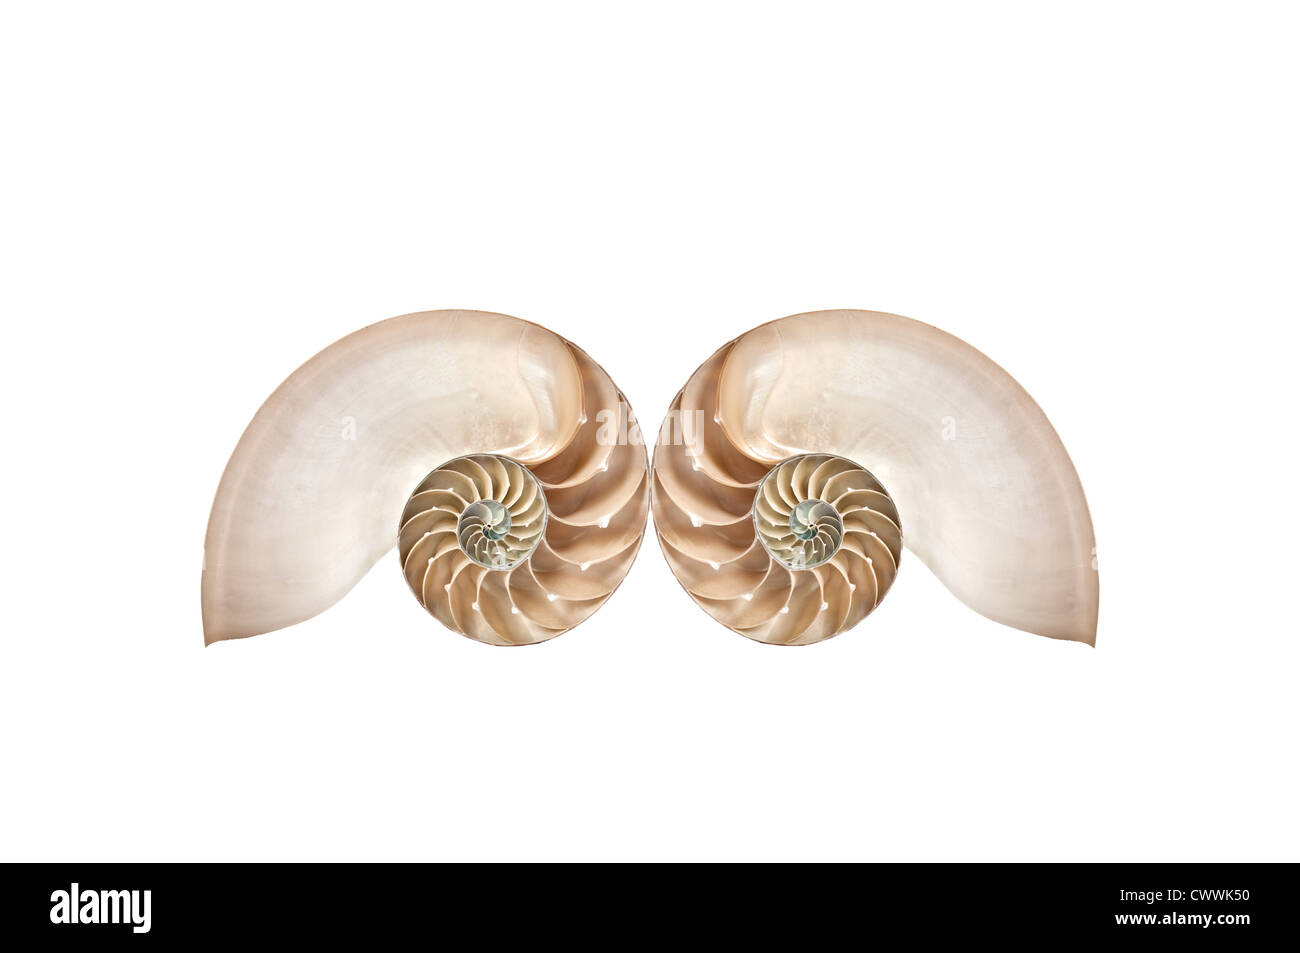 Double Nautilus shell - Stock Image